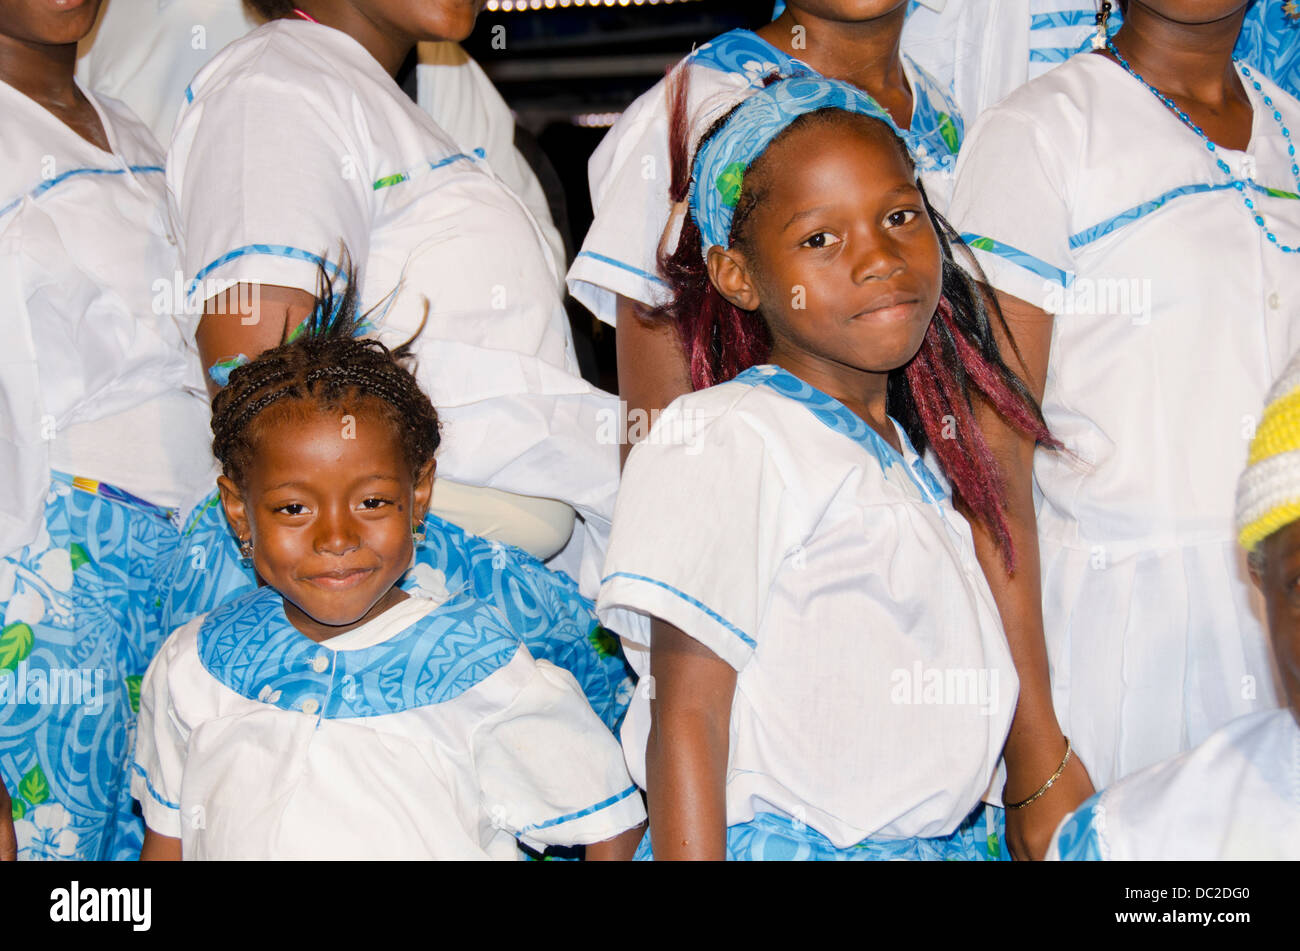 Belize, Placencia. Local dance group, Garifuna cultural dancers. - Stock Image